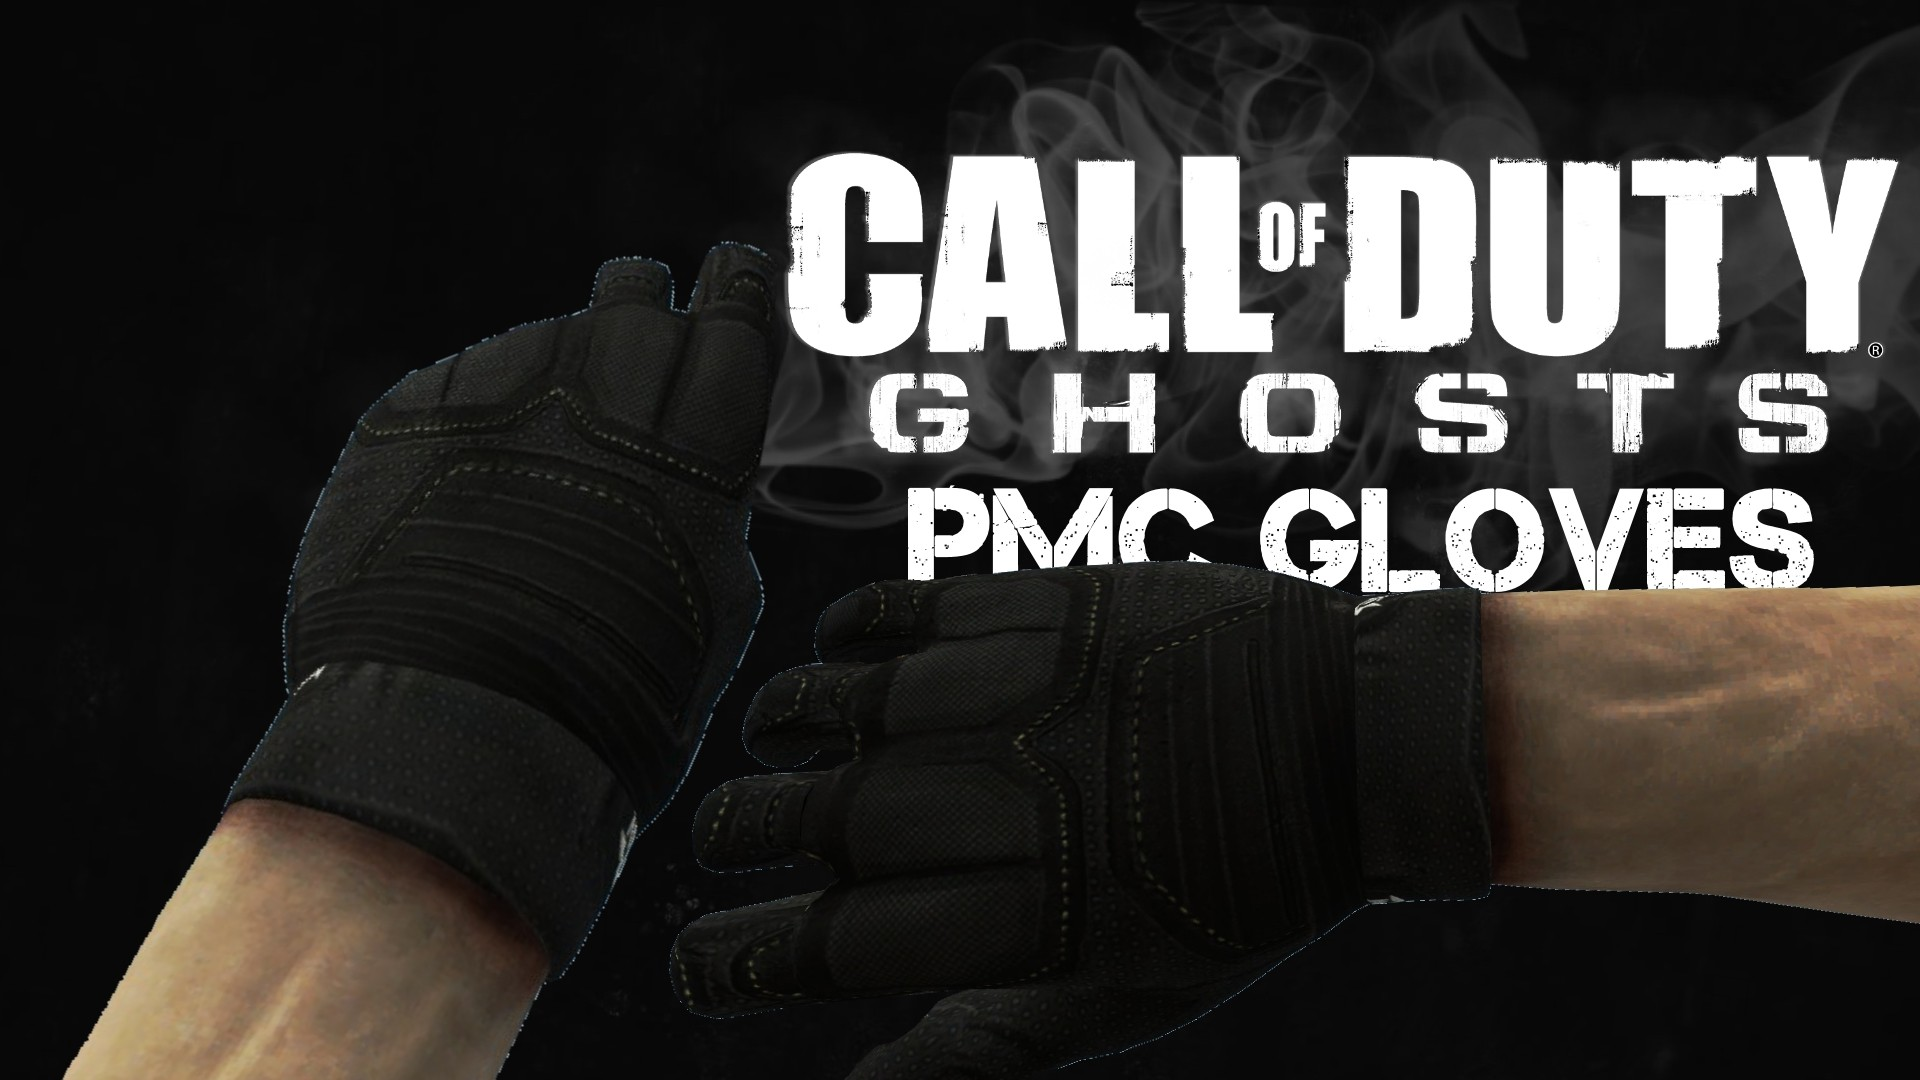 Перчатки PMC Gloves изо Call of Duty